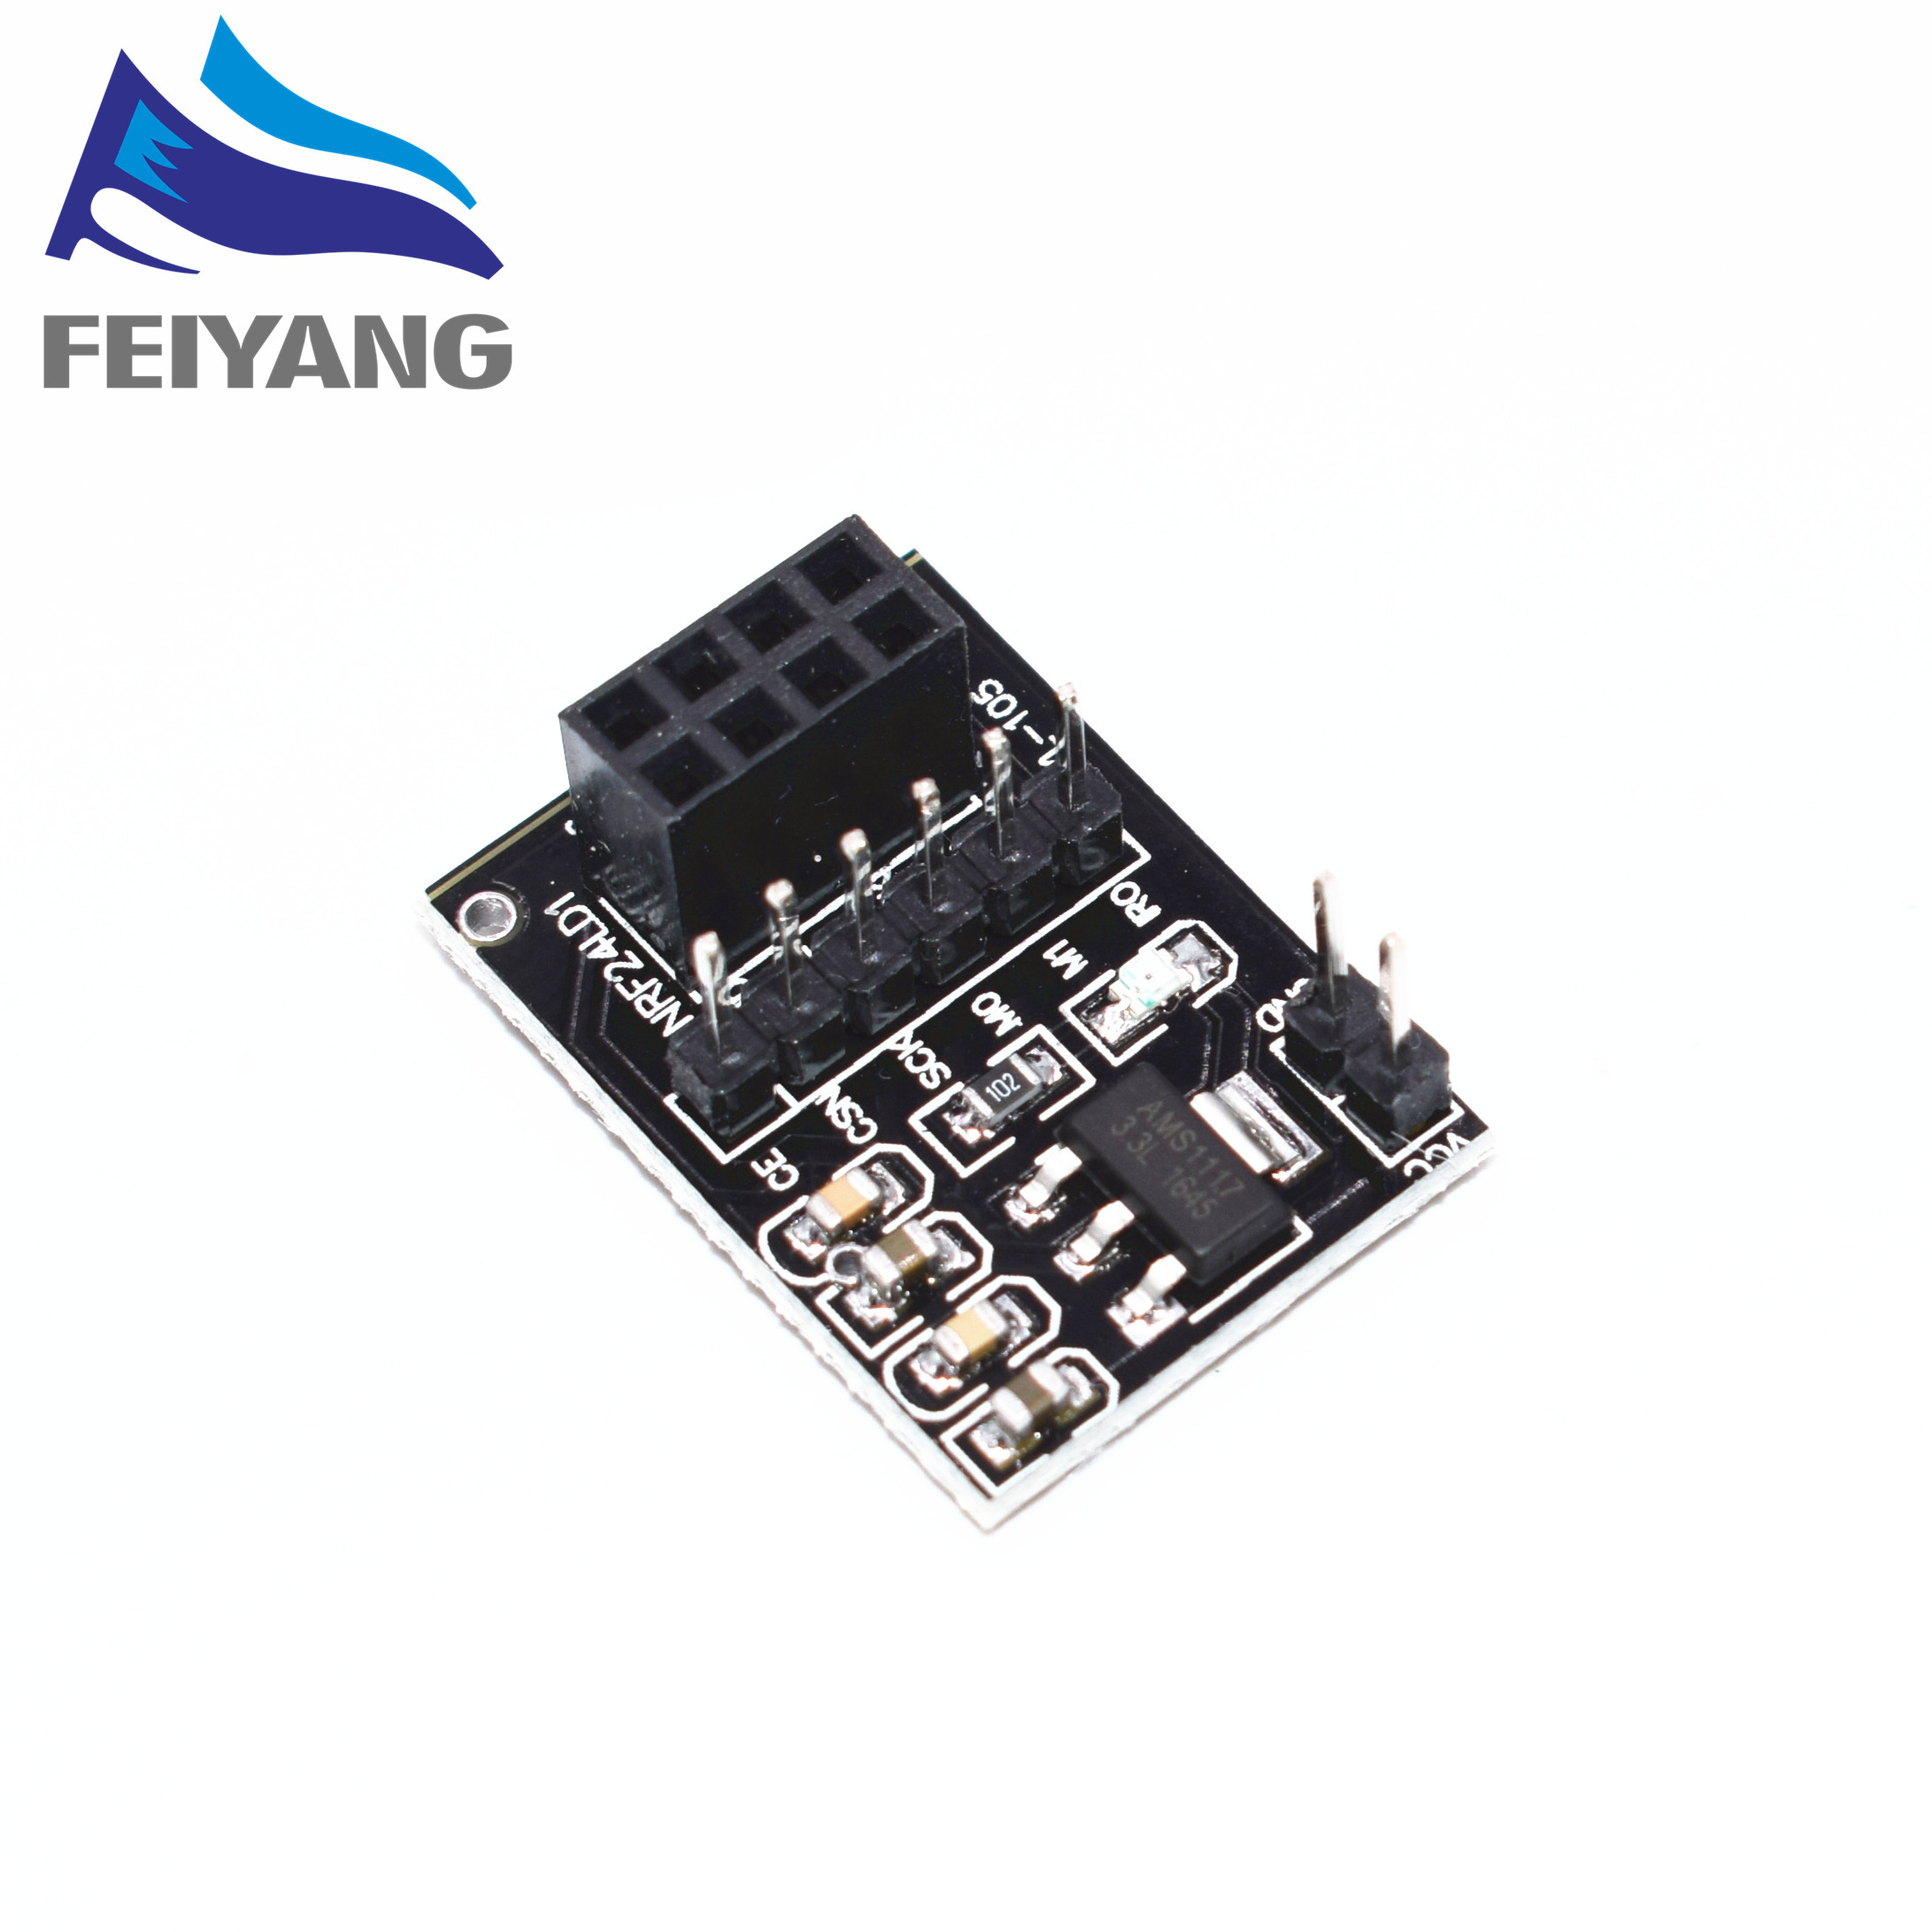 1PCS New Socket Adapter plate Board for 8Pin NRF24L01 Wireless Transceive module 511PCS New Socket Adapter plate Board for 8Pin NRF24L01 Wireless Transceive module 51